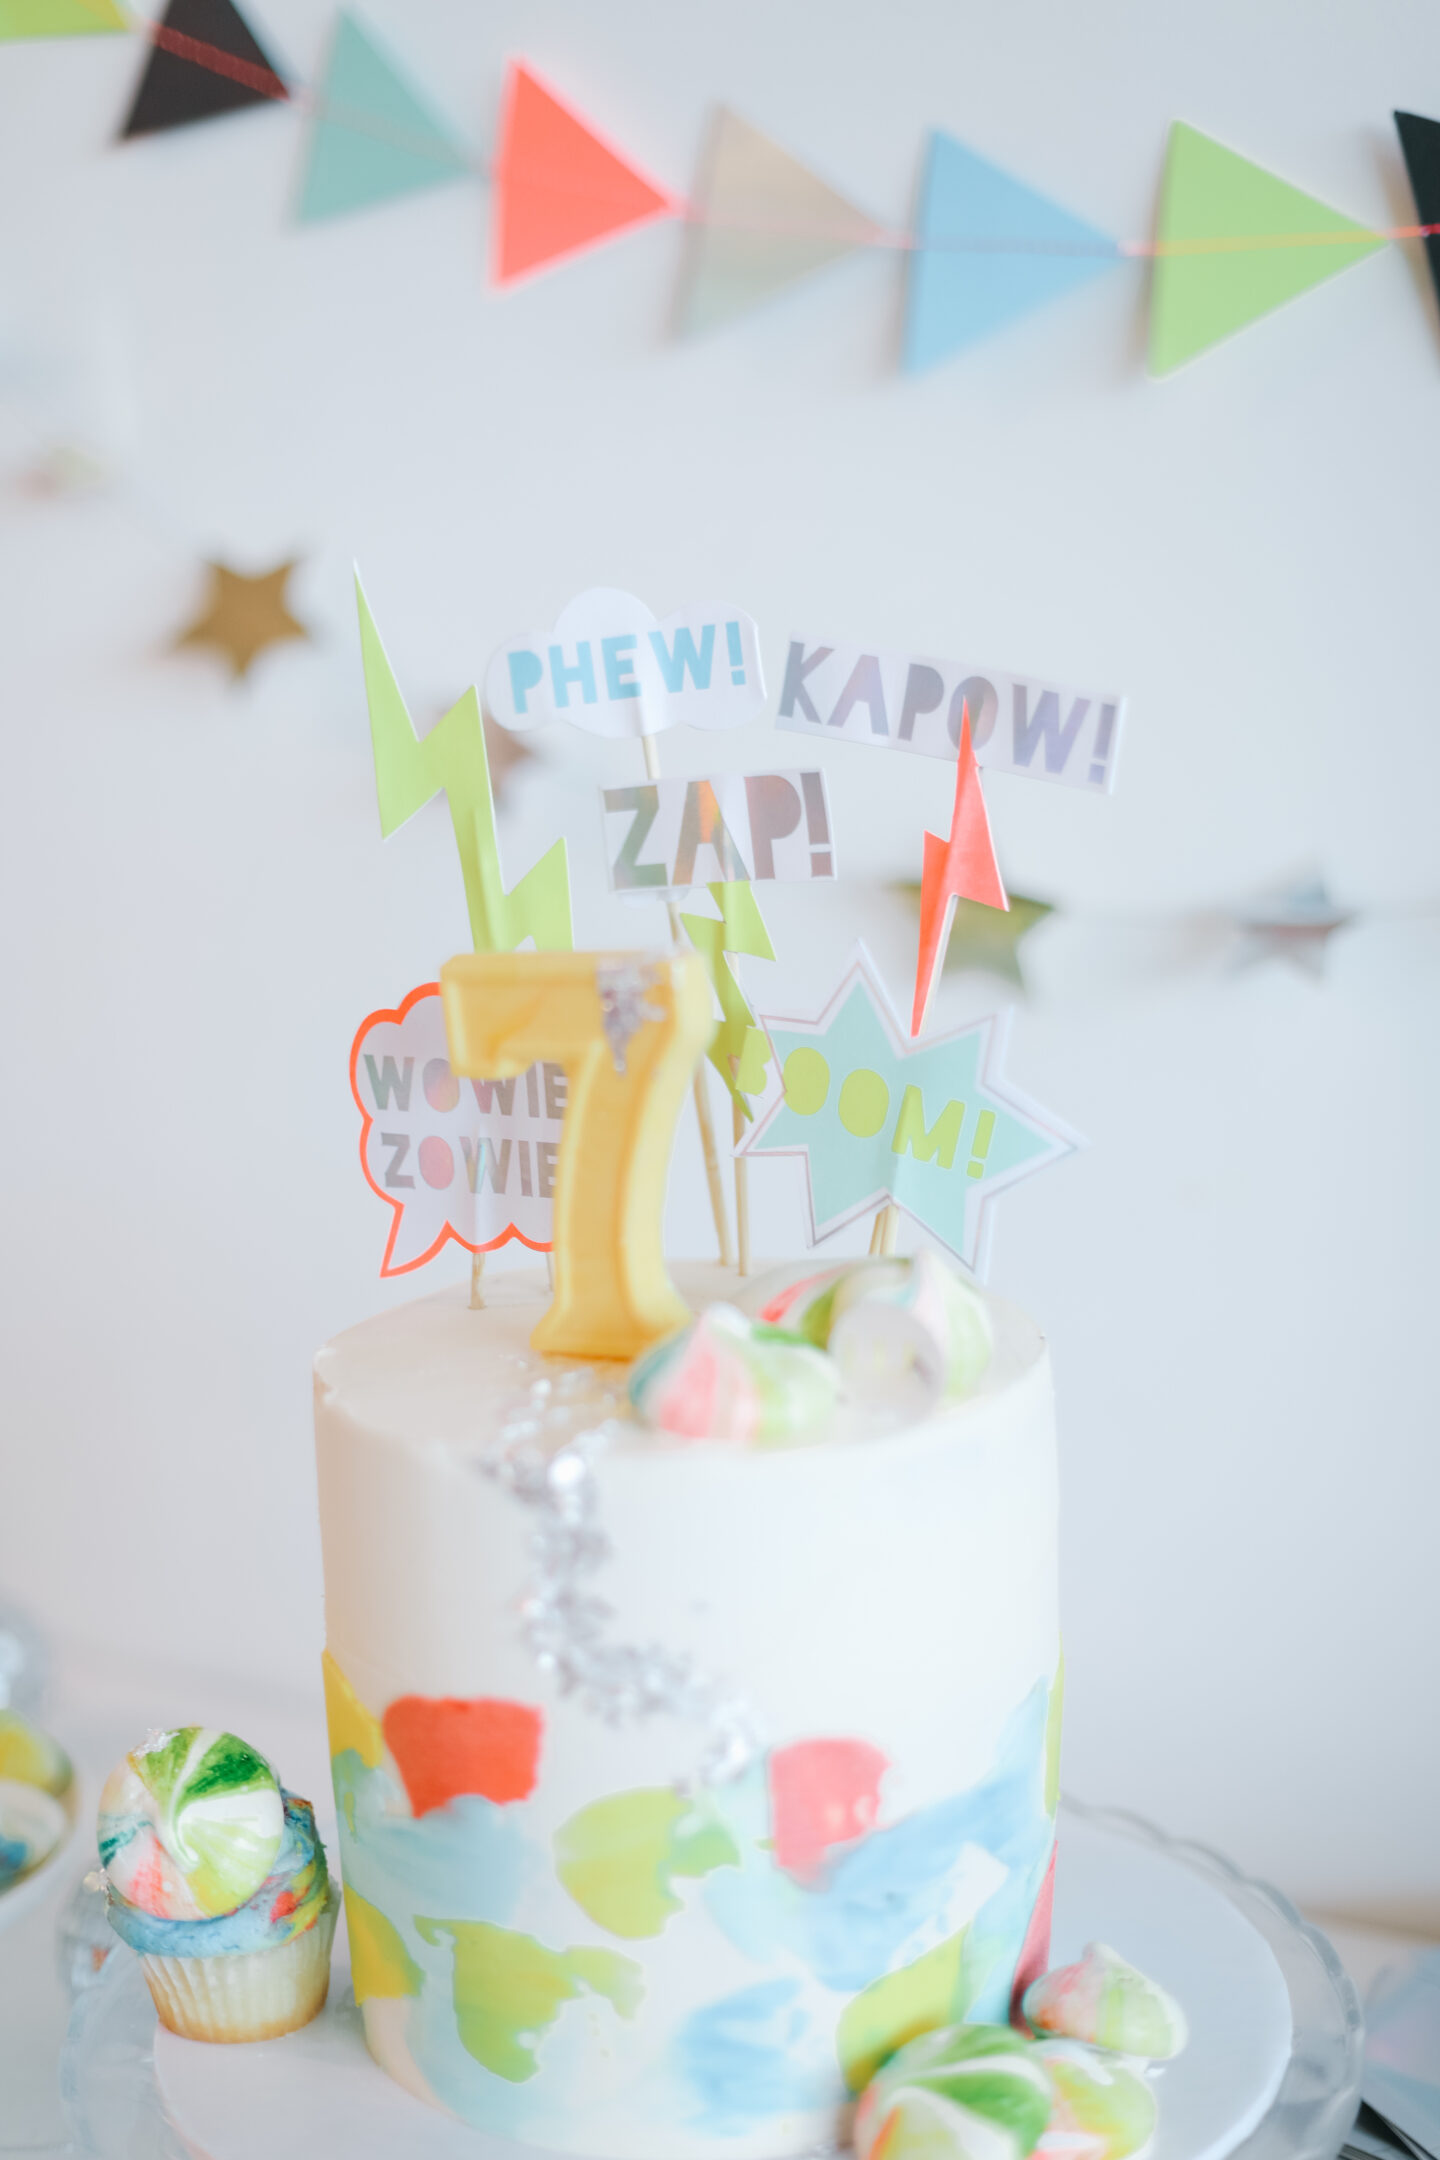 A colourful cake for parties